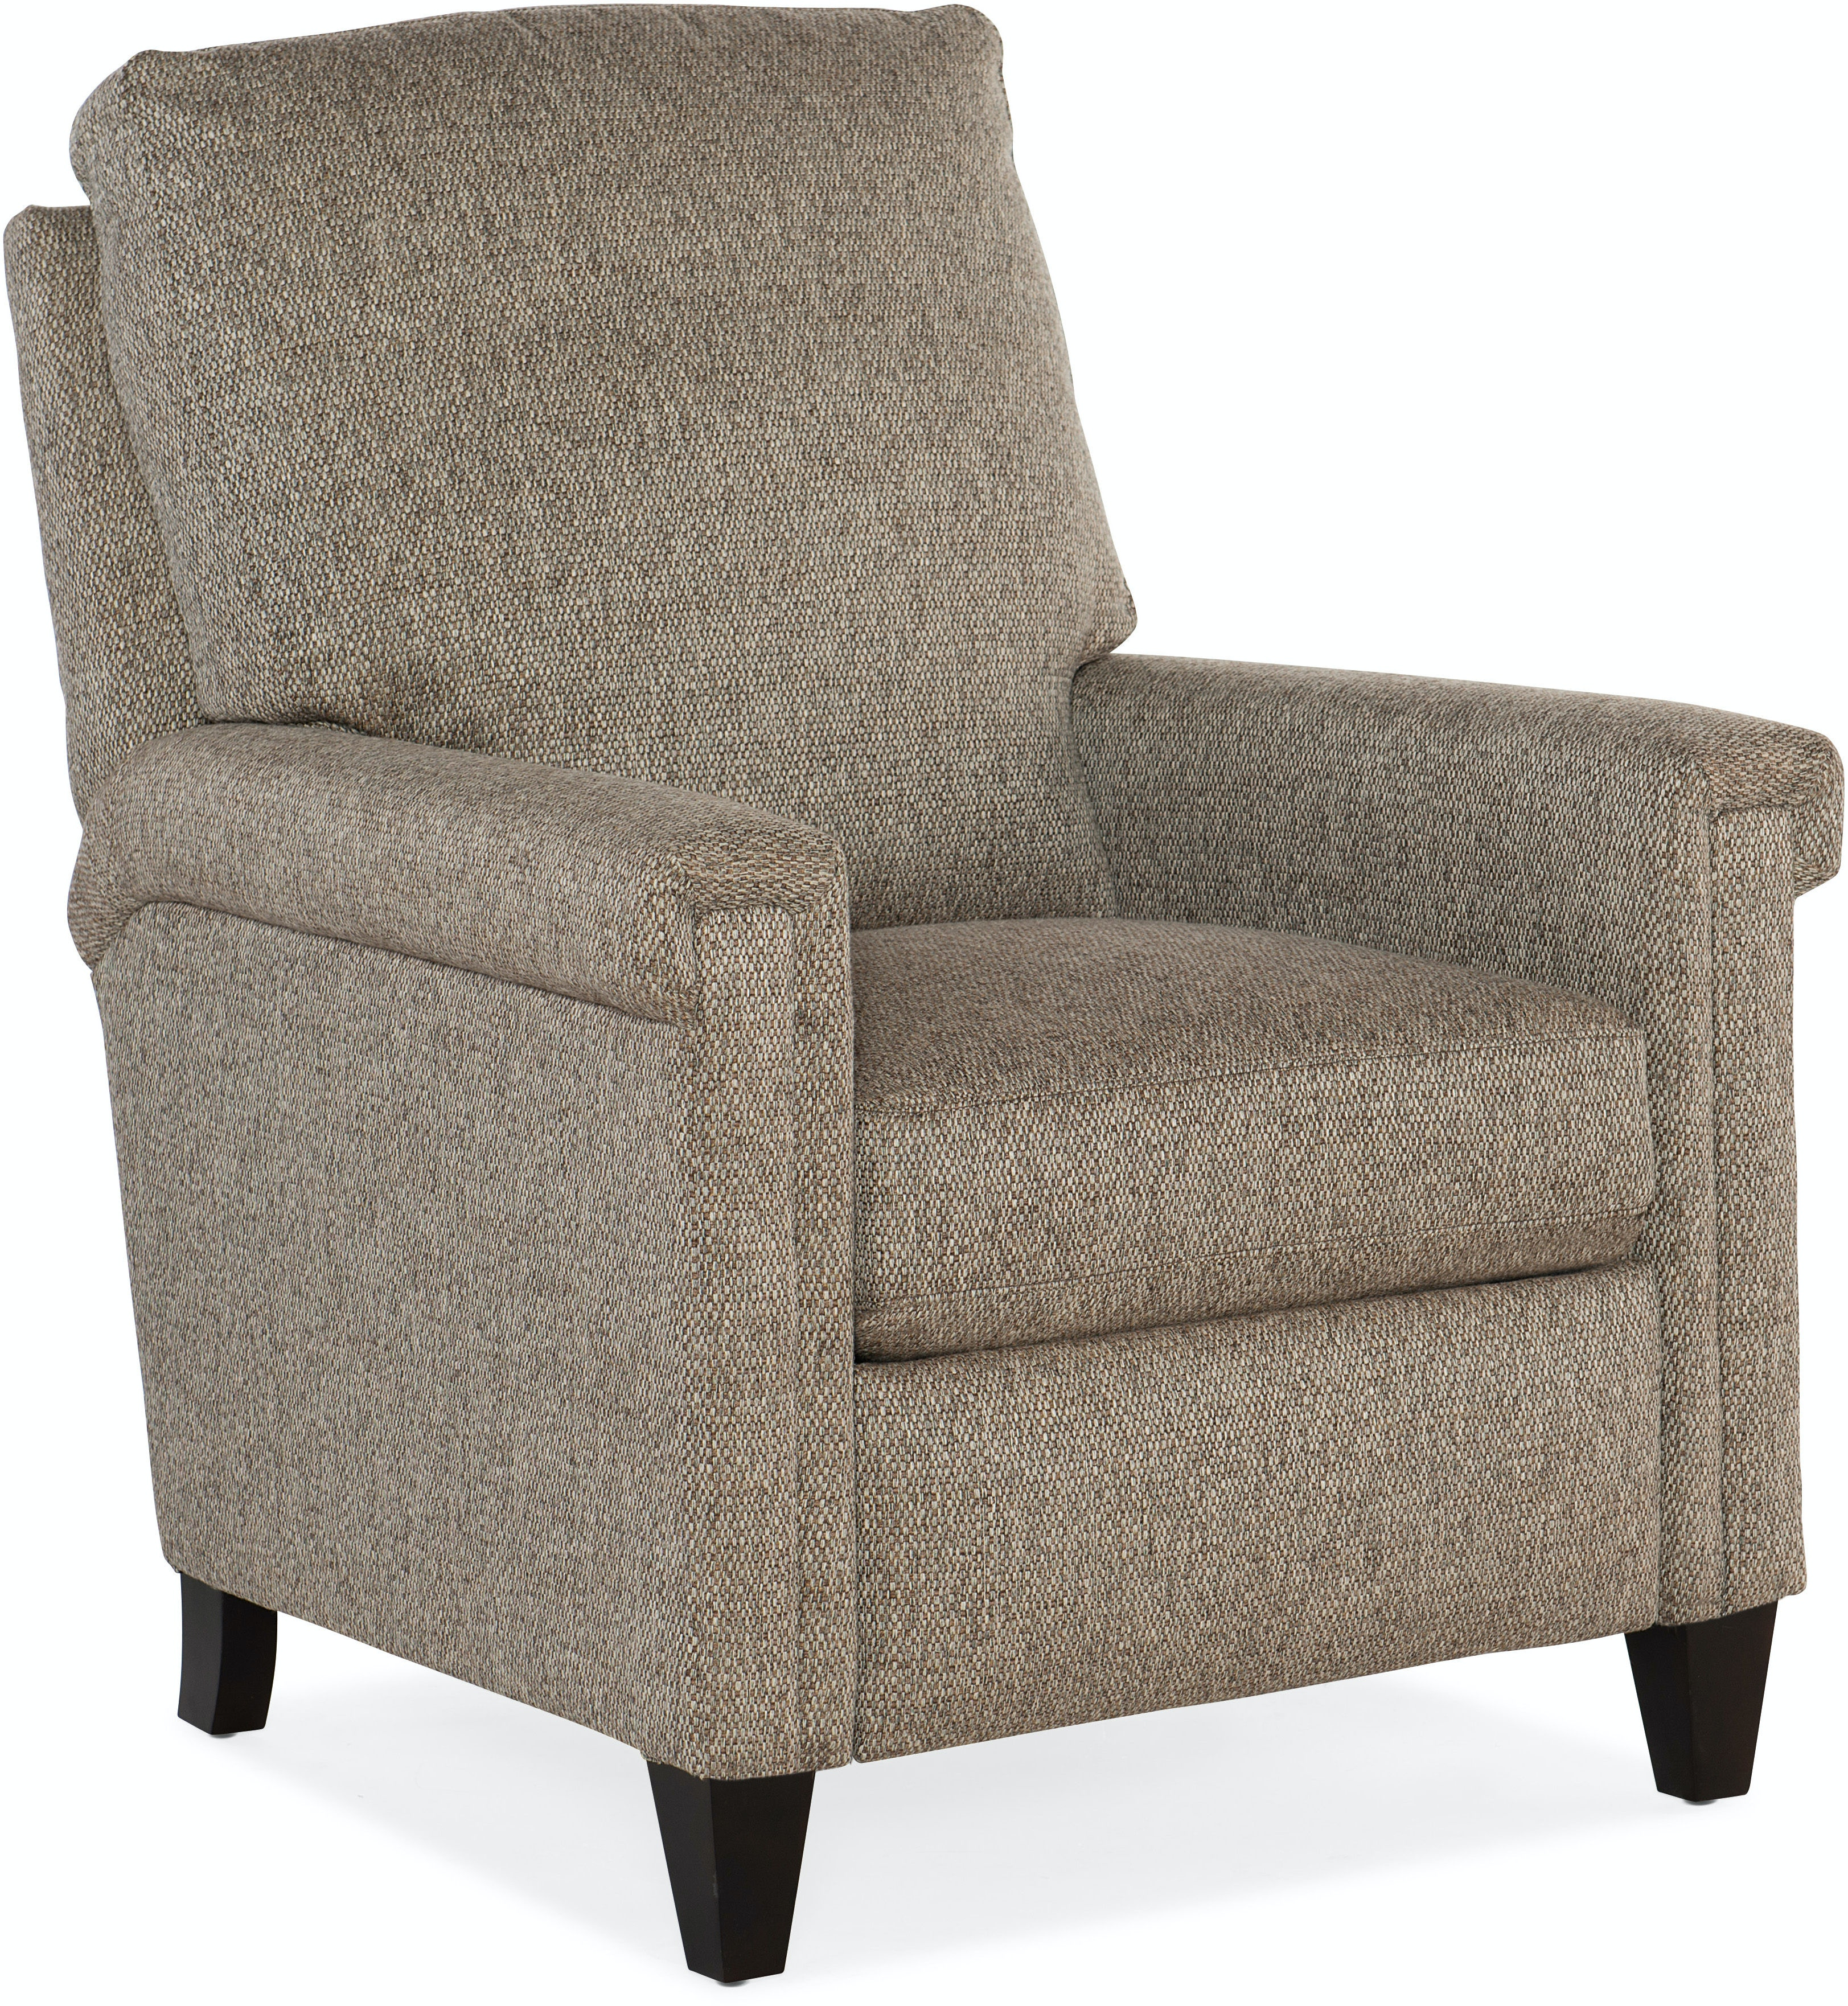 Bradington-Young Kara 3-Way Lounger 3084